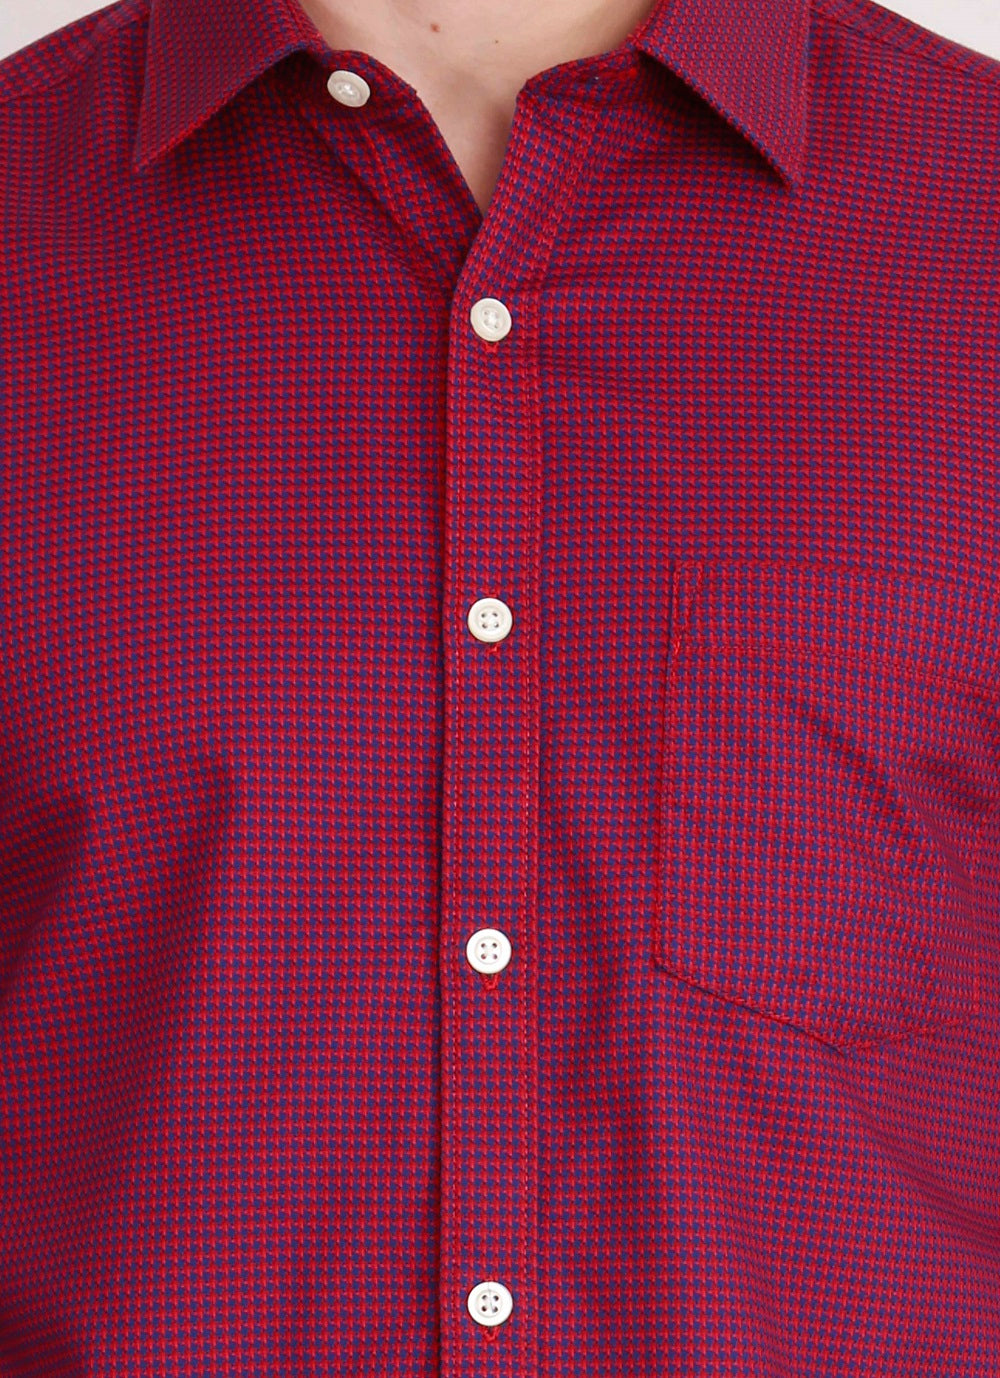 IMYOUNG Red Solid Slim Fit Casual Shirt